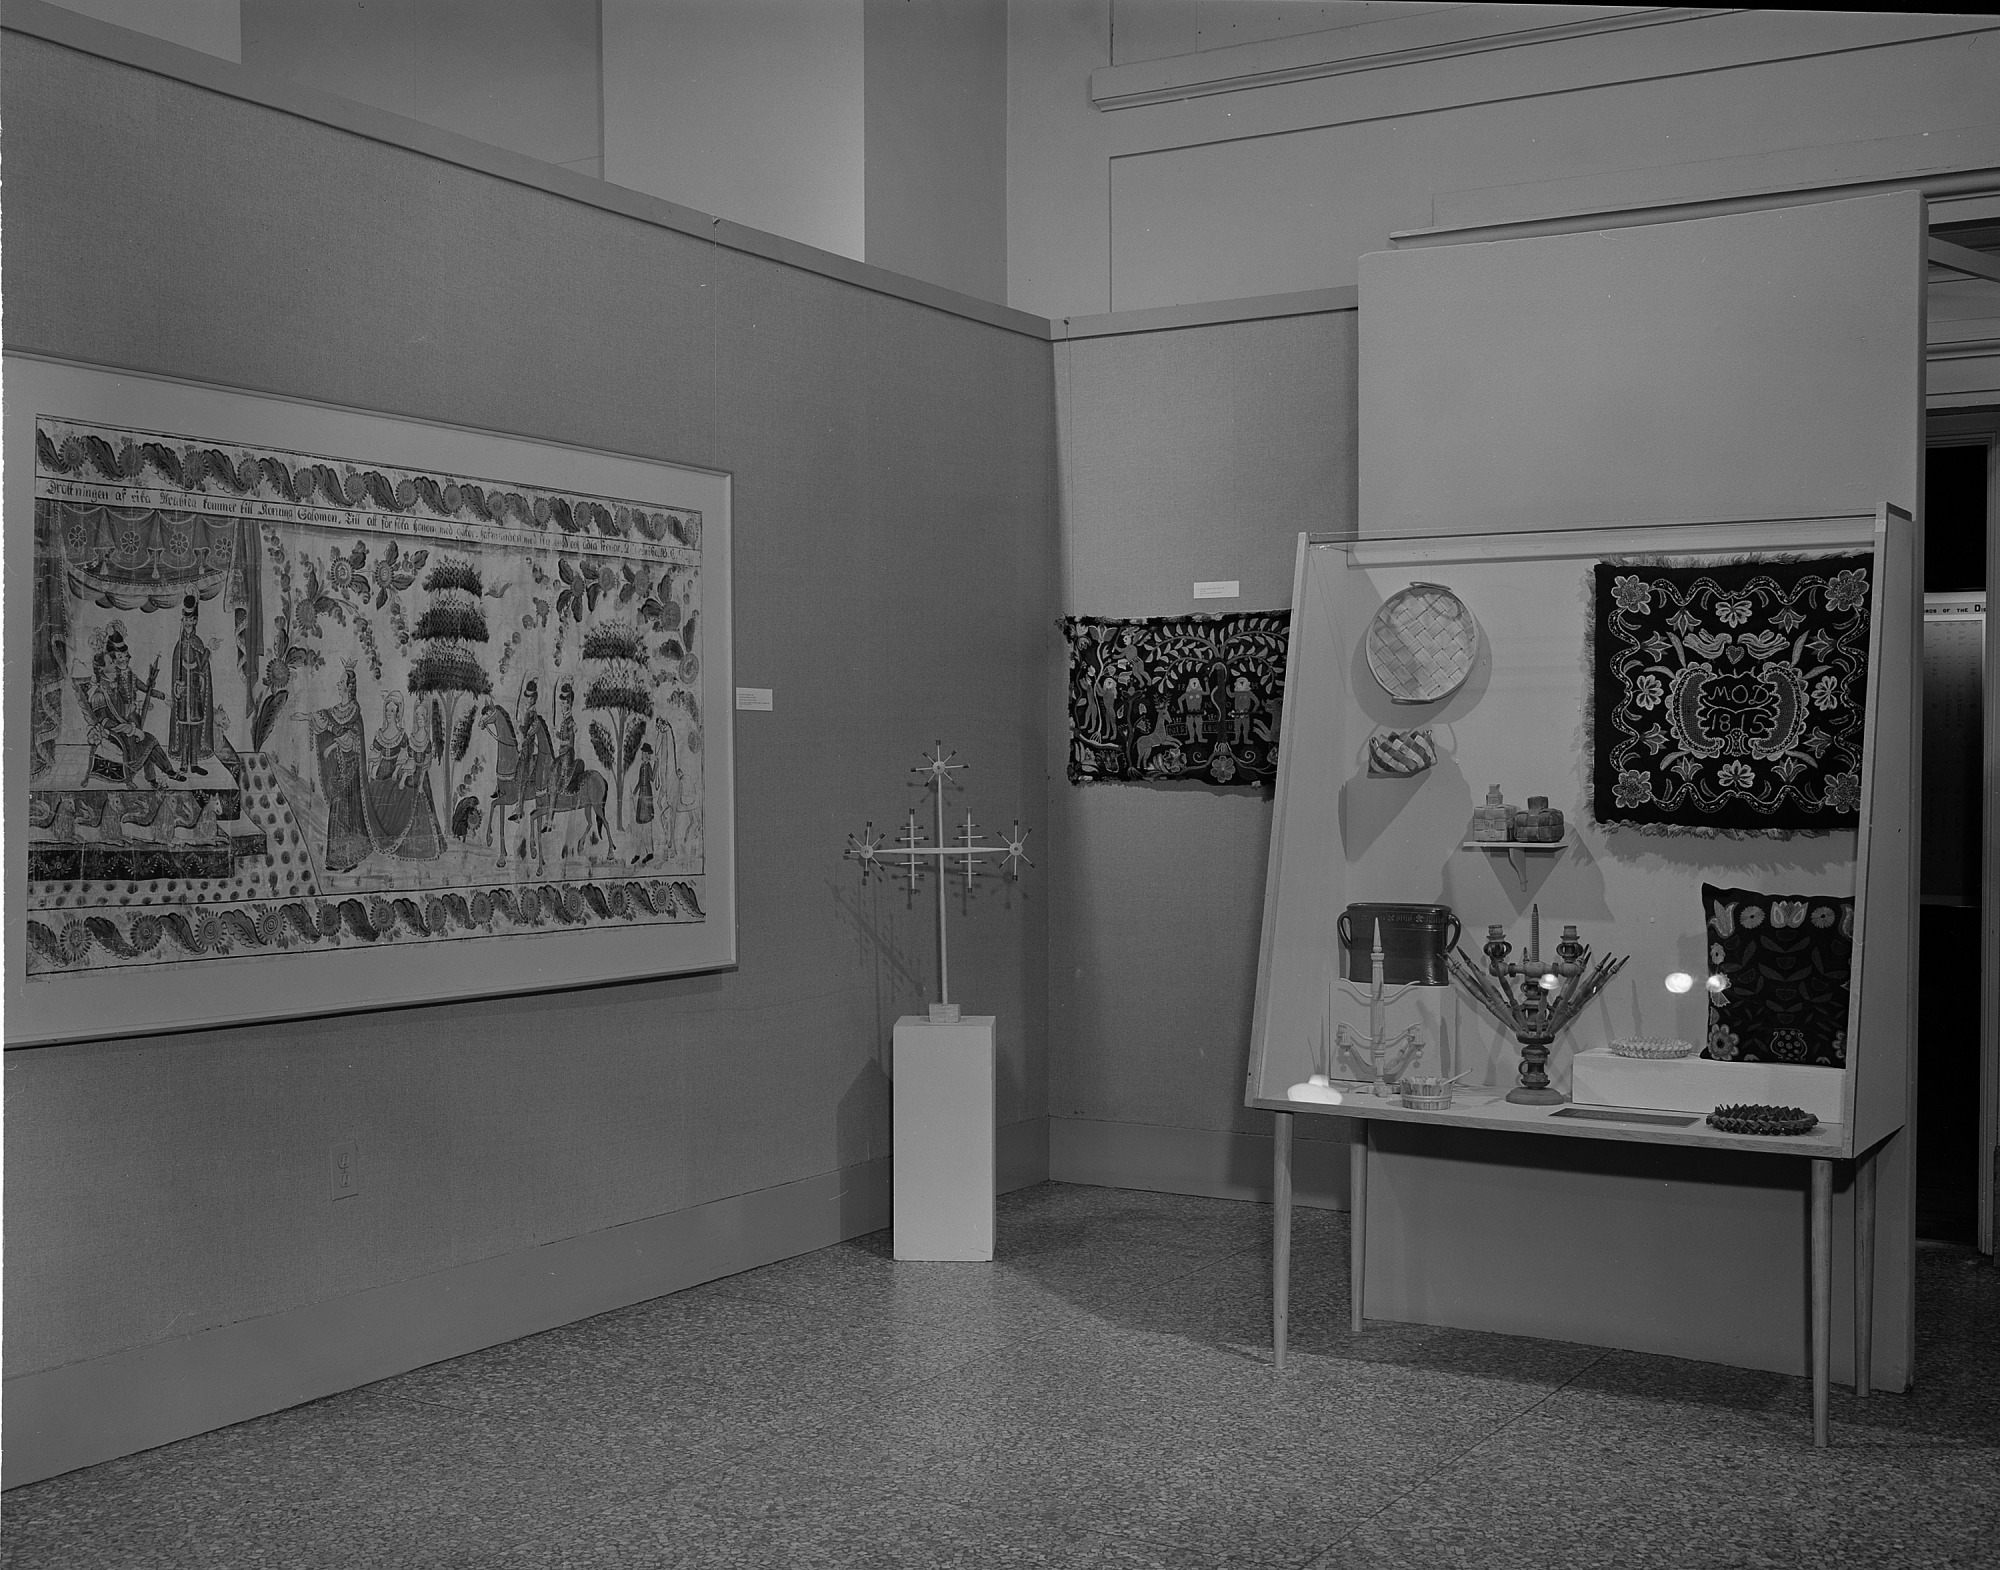 Swedish Folk Art, Exhibition, by Unknown, 1964, Smithsonian Archives - History Div, MNH541A.